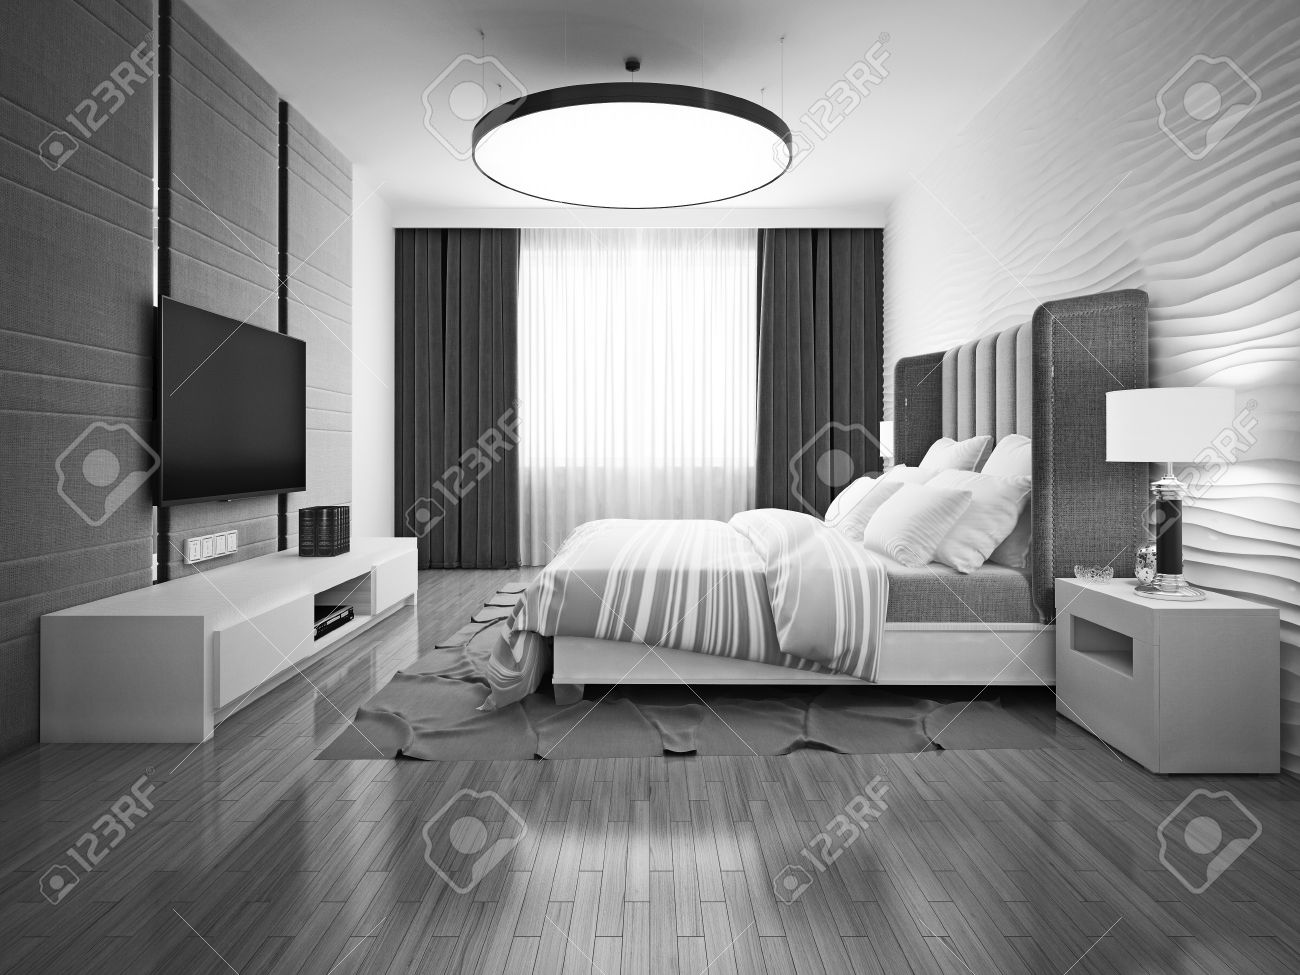 Charming Monochrome Art Deco Bedroom. 3D Render Stock Photo   46197798